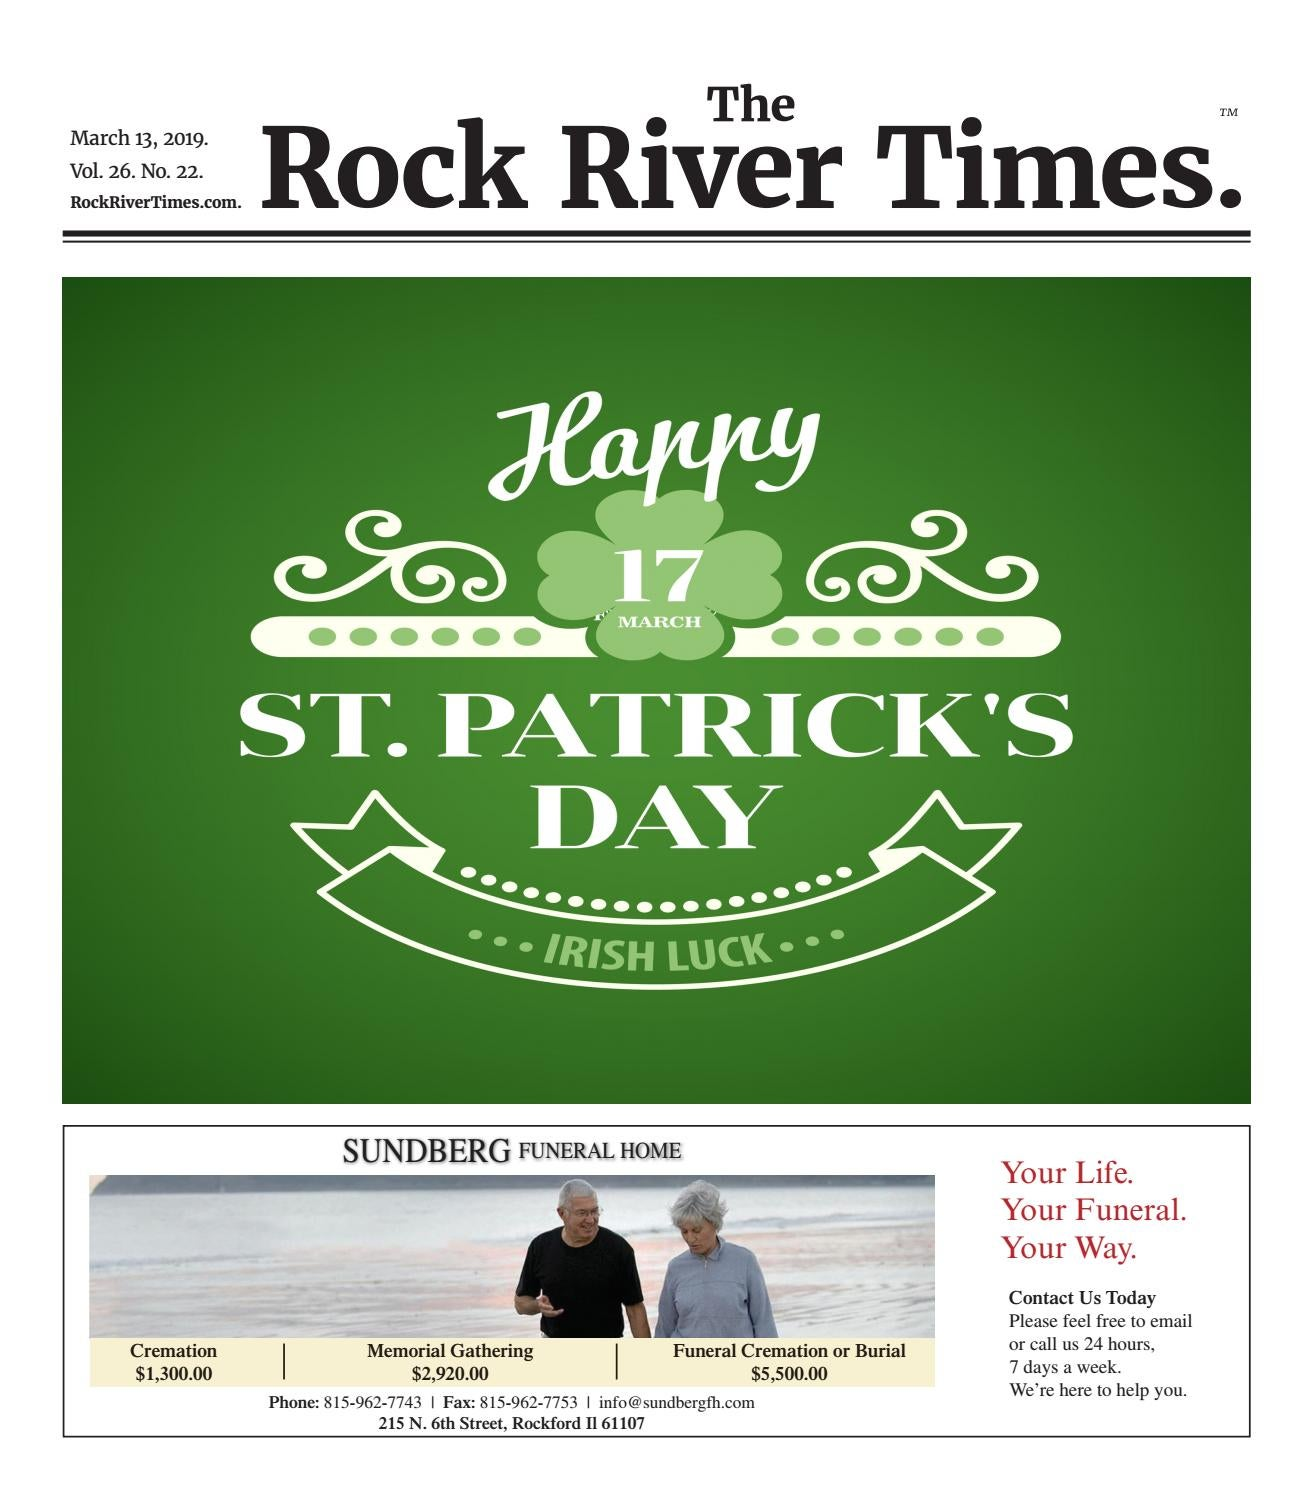 The Rock River Times – March 13, 2019 by Rock River Times